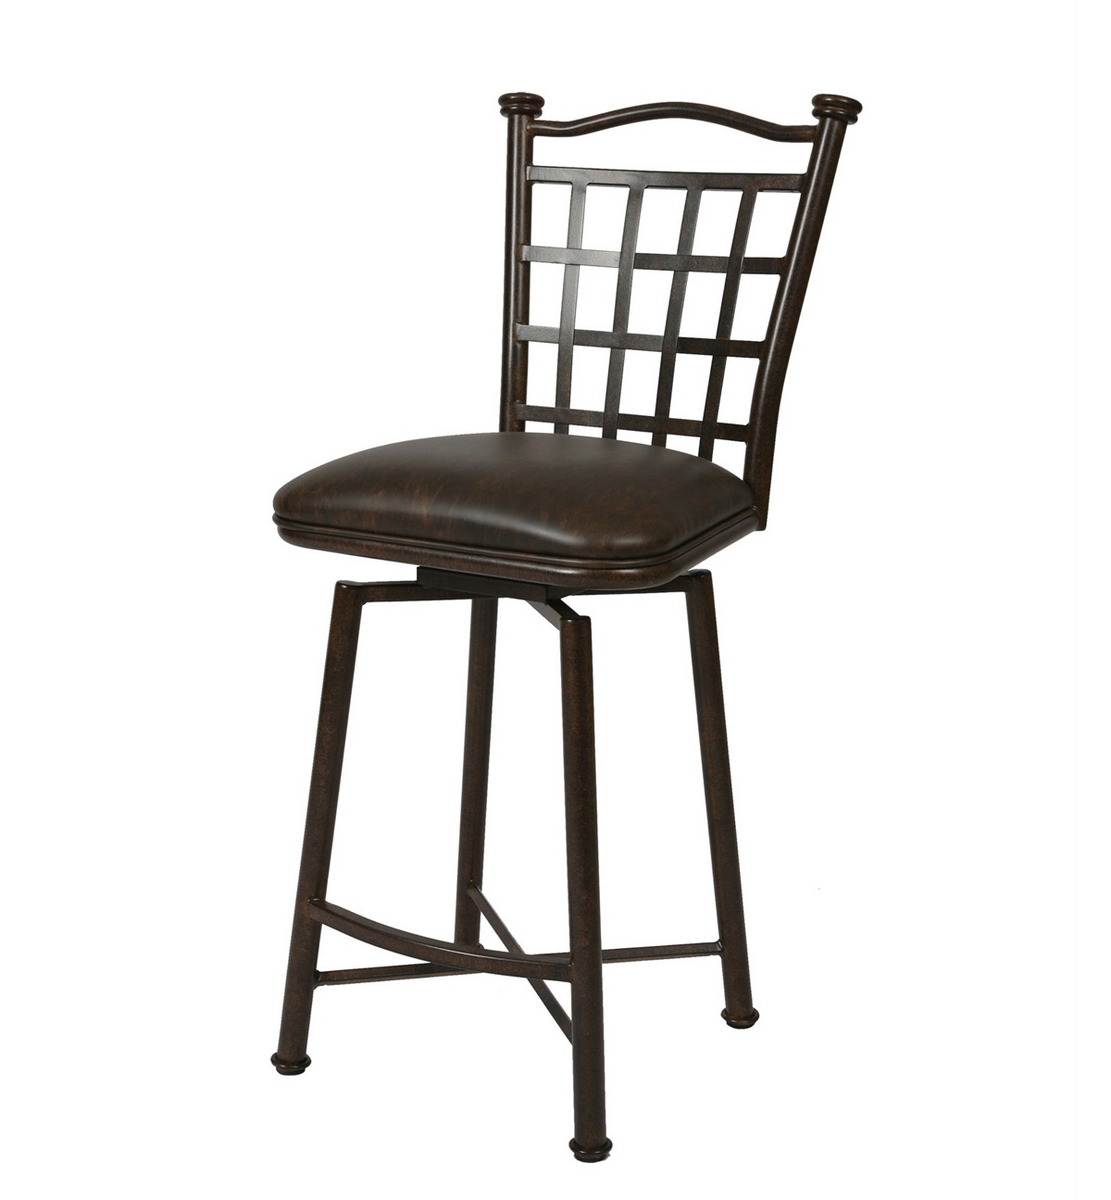 Pastel Bay Point Barstool - Autumn Rust - Florentine Coffee Seat - (30 Inch)